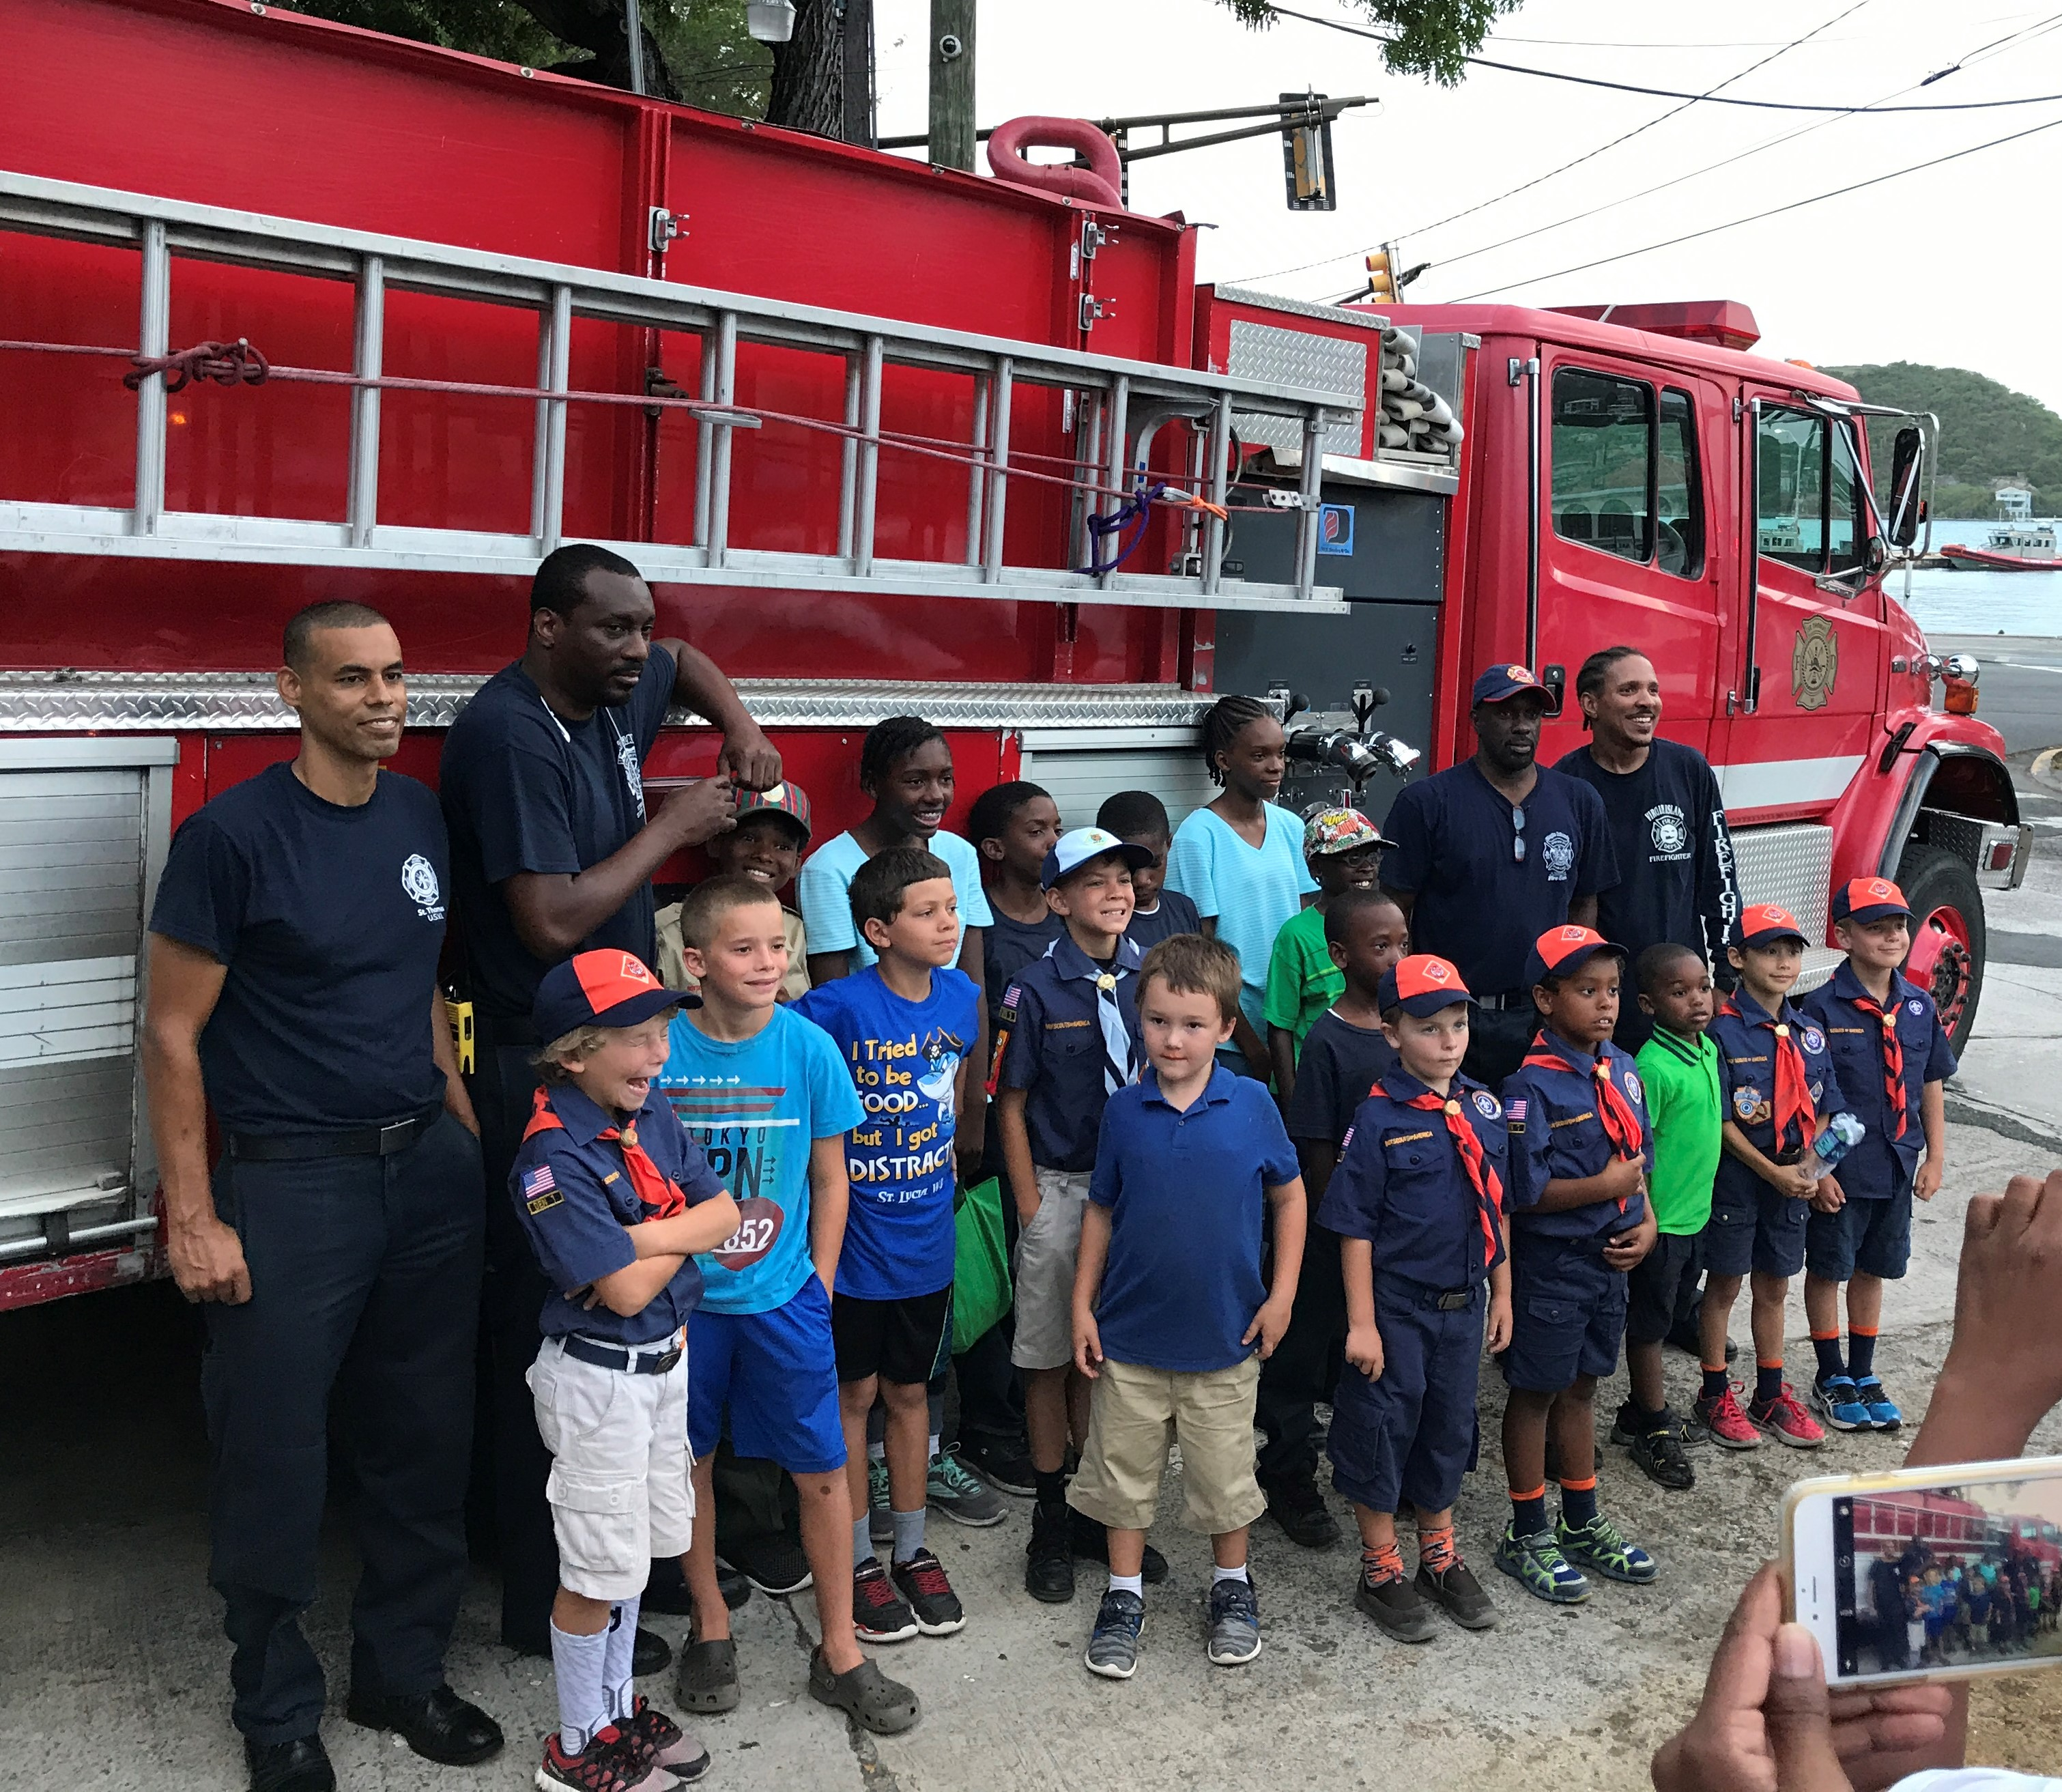 V I Fire Service Brings In Cub Scouts For A Tour